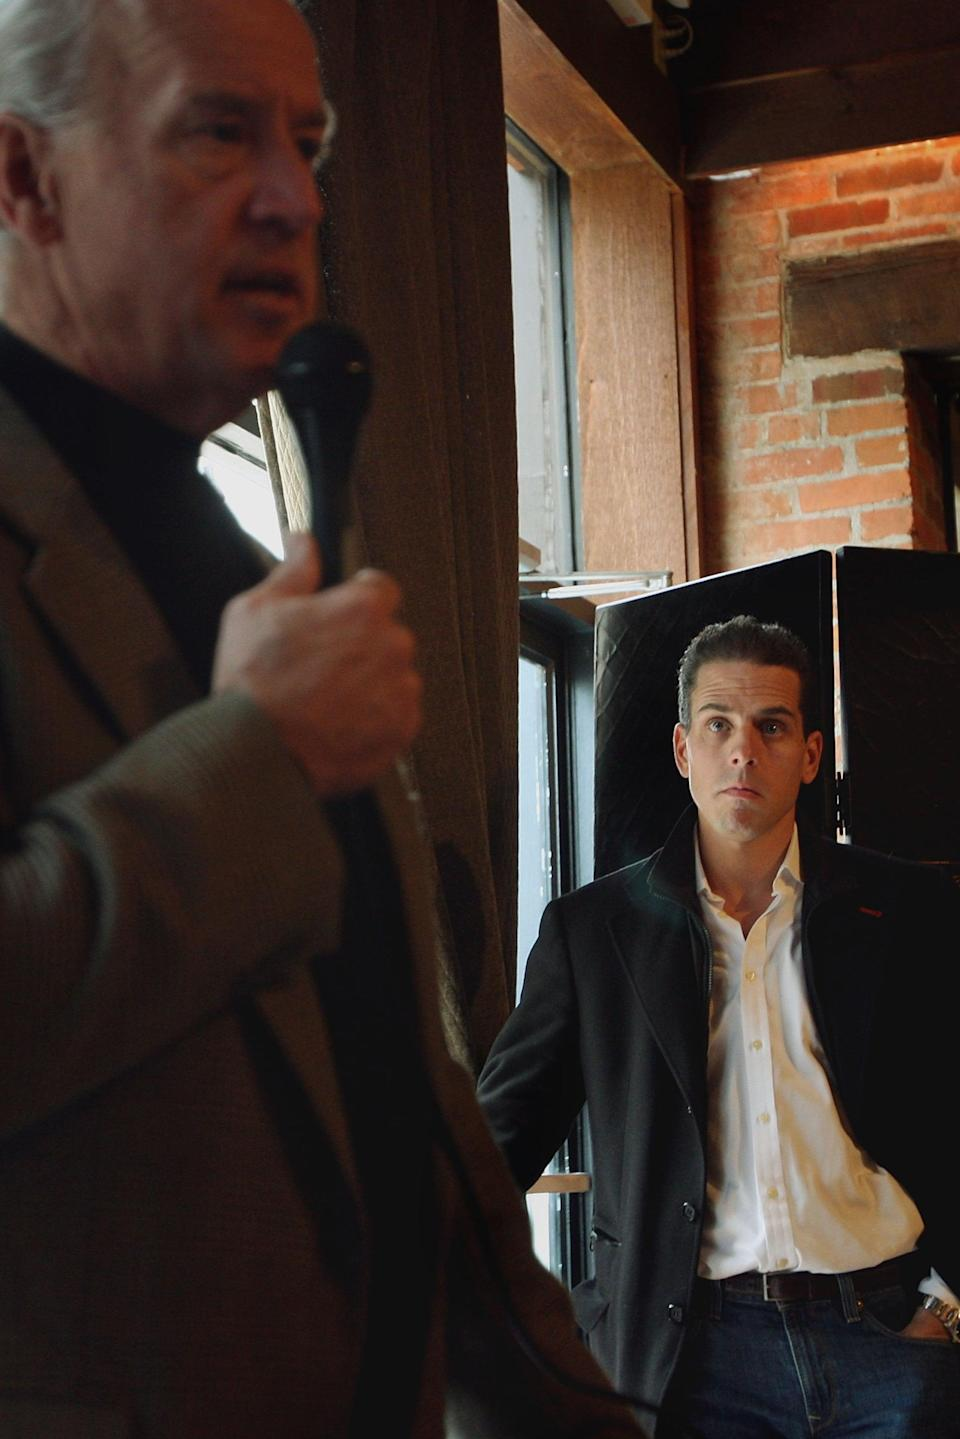 Hunter Biden looks on as his father fields questions during his second run to be the Democratic presidential candidate in 2007Getty